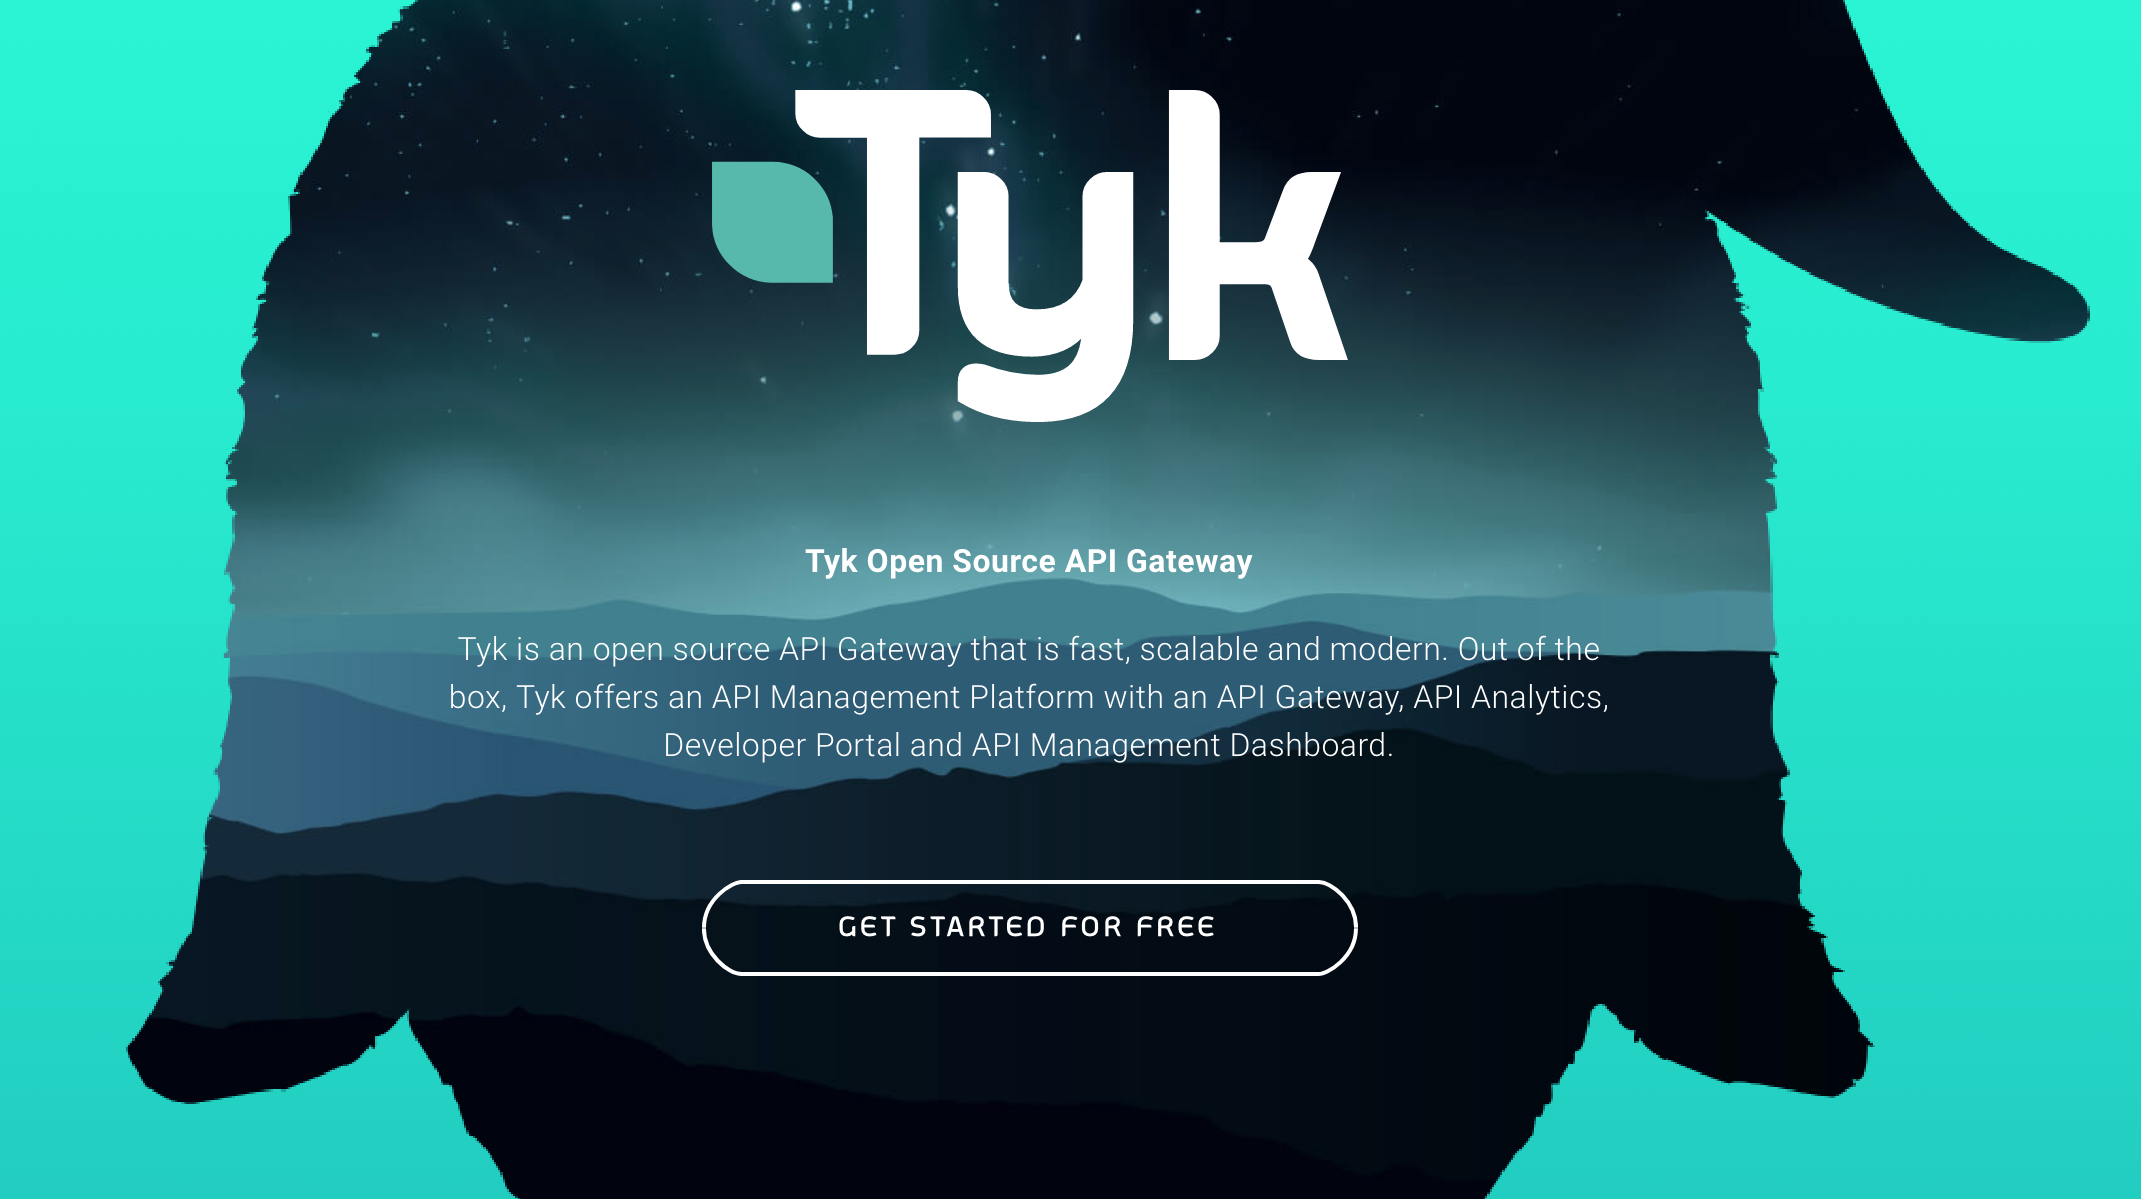 Tyk secures £4m Series A funding for US expansion